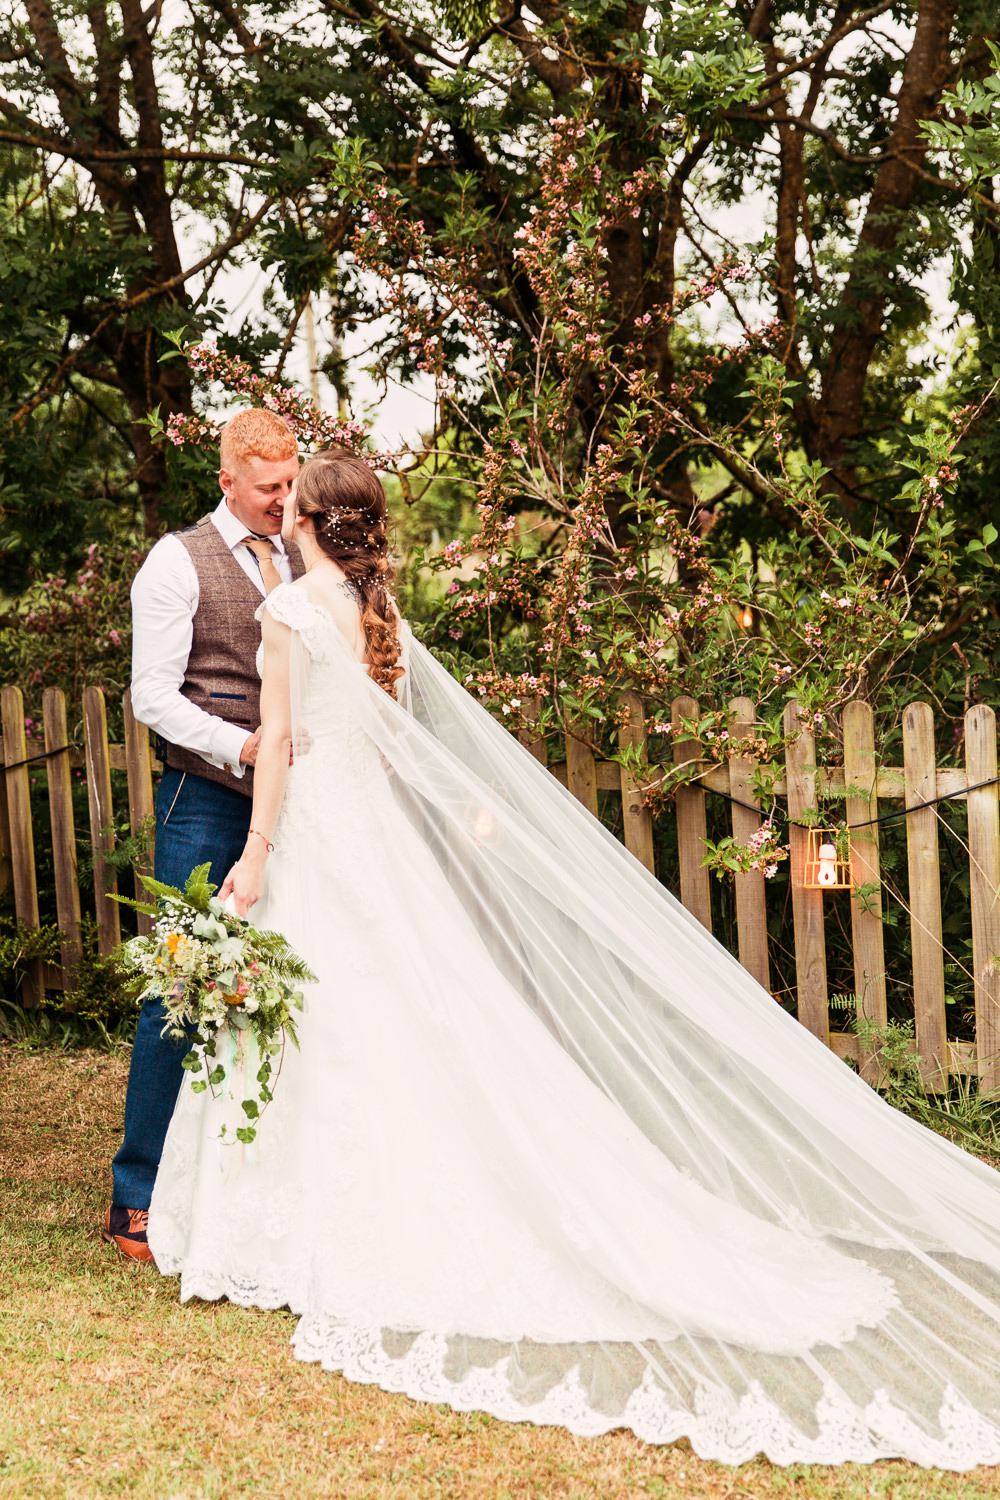 Bride Bridal Bespoke Dress Cape Sweetheart Neckline A Line Lace Tweed Mismatched Waistcoat Groom Embellished Plait Hair Meadow Wildflower Bouquet Festival Wedding Mismatched Country Camilla Lucinda Photography